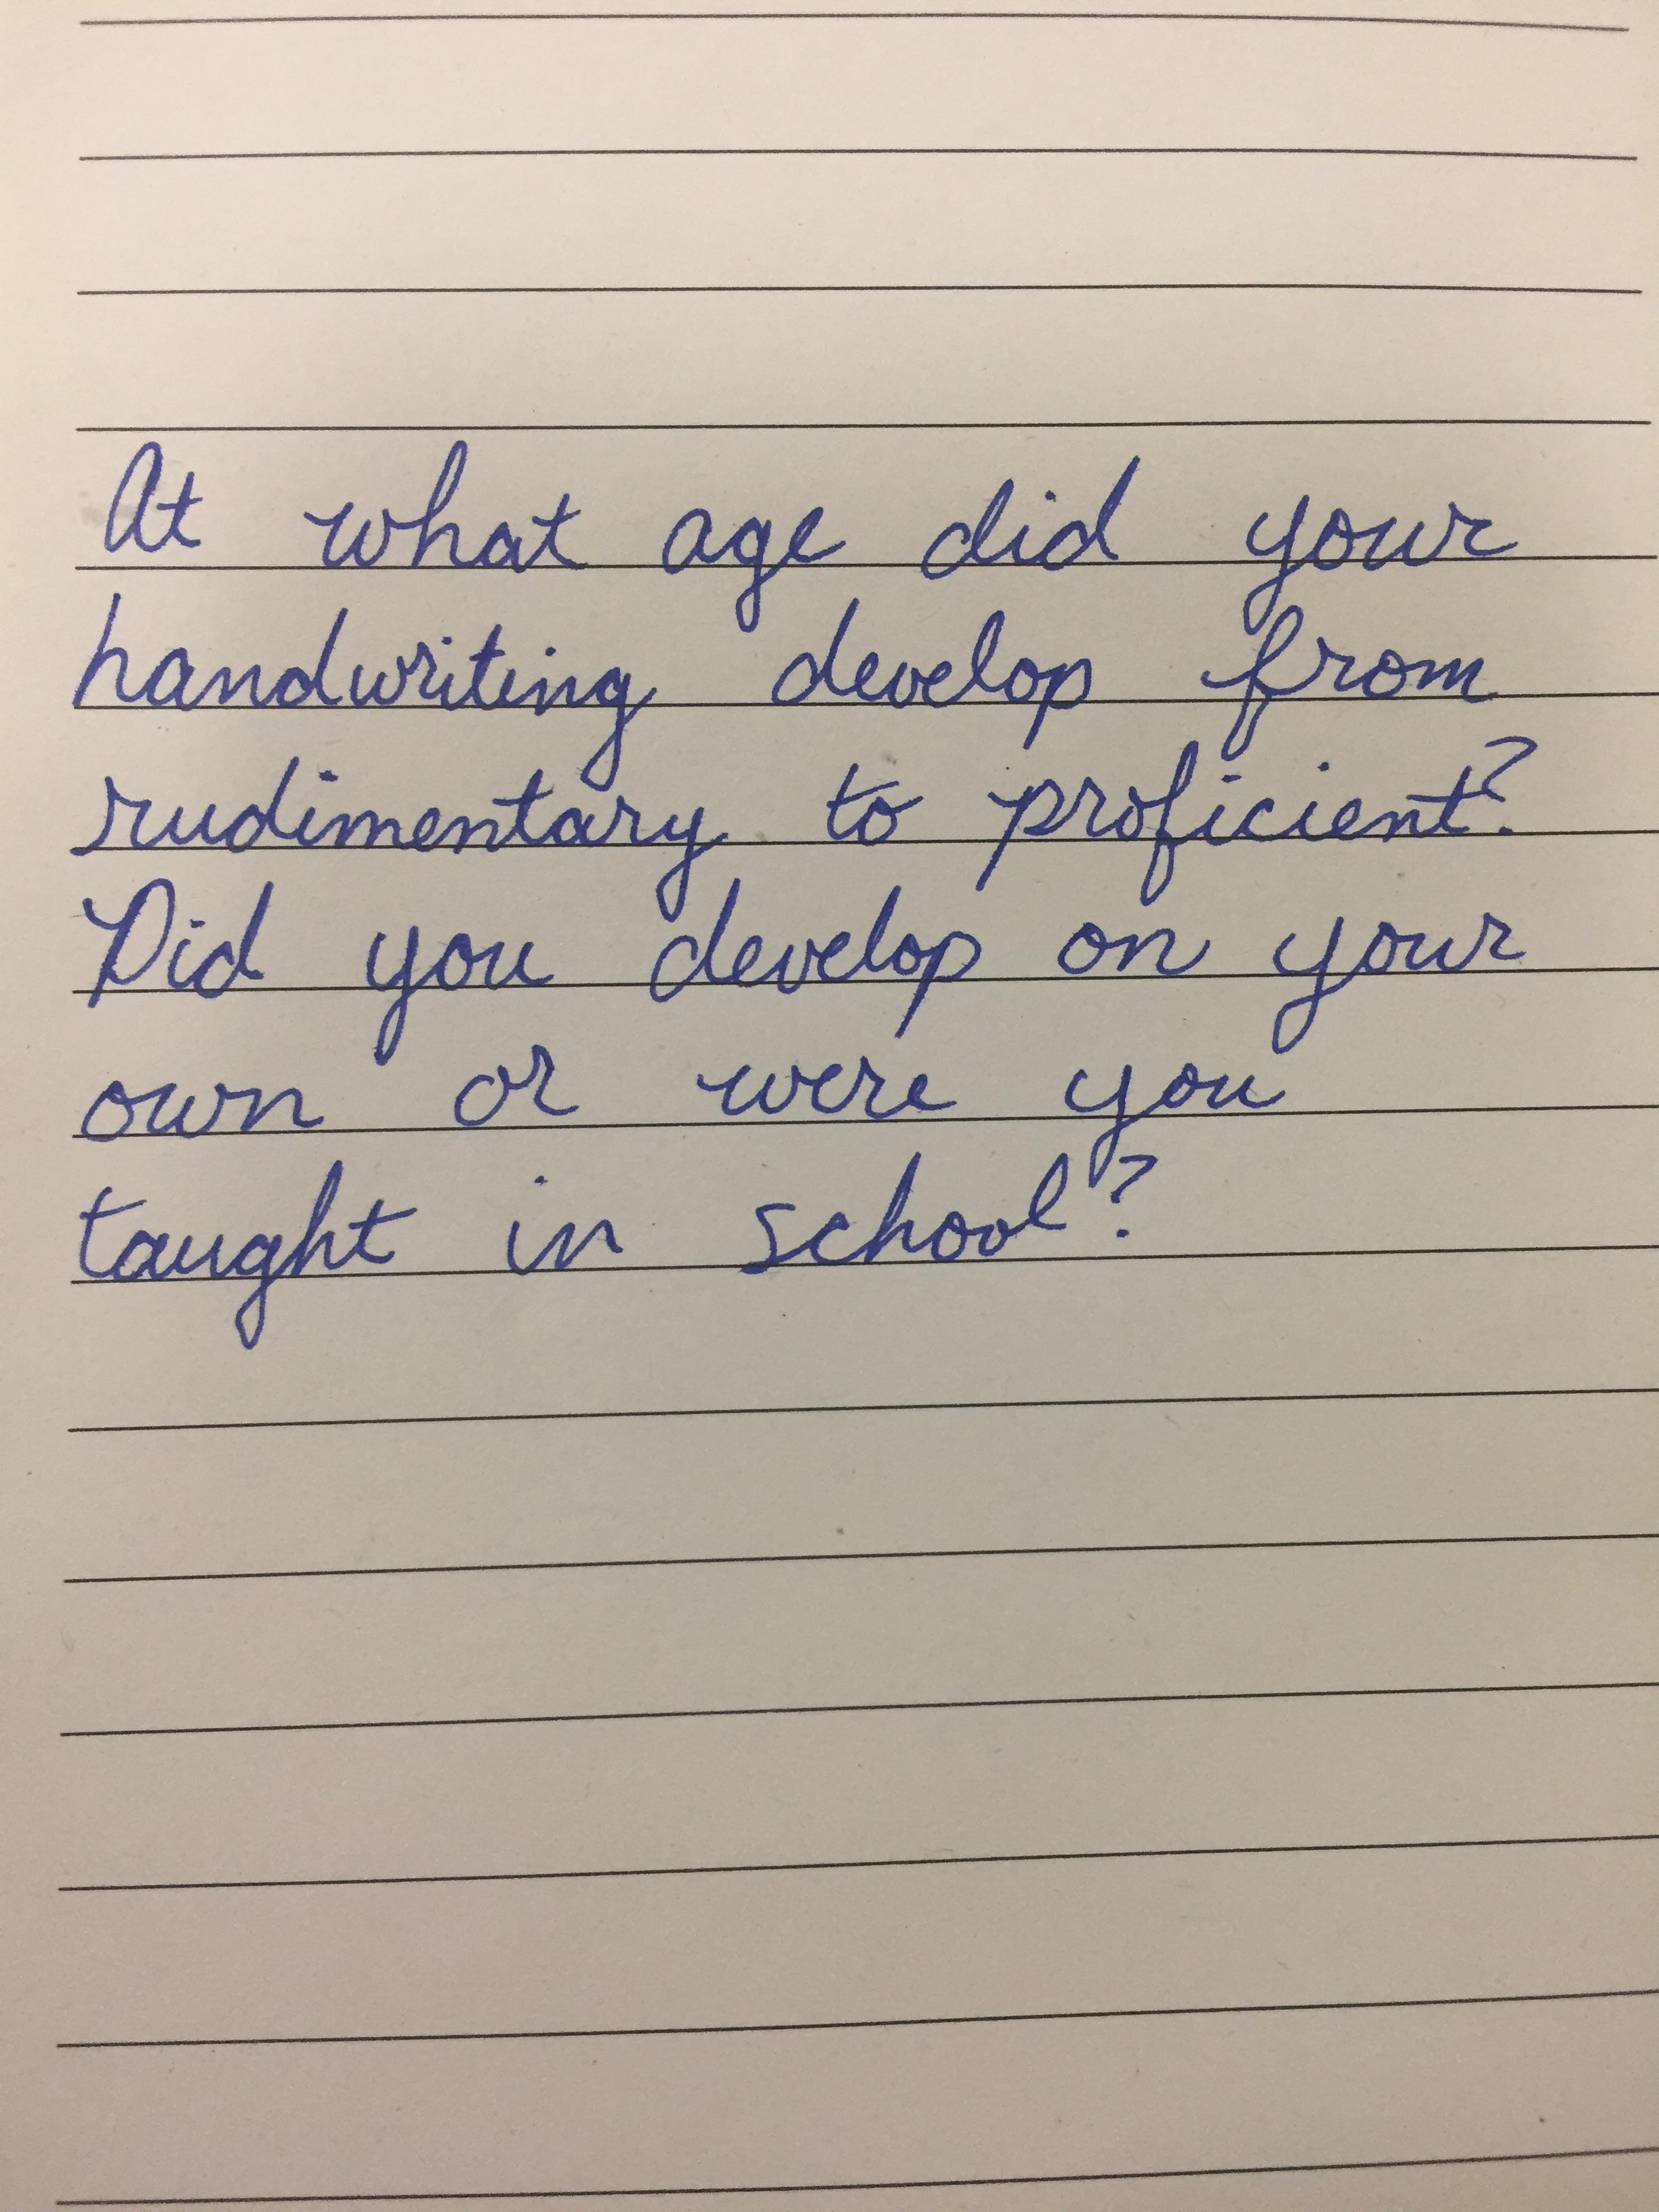 A Question For R Handwriting At What Age Did You Develop Handwriting From Rudimentary To